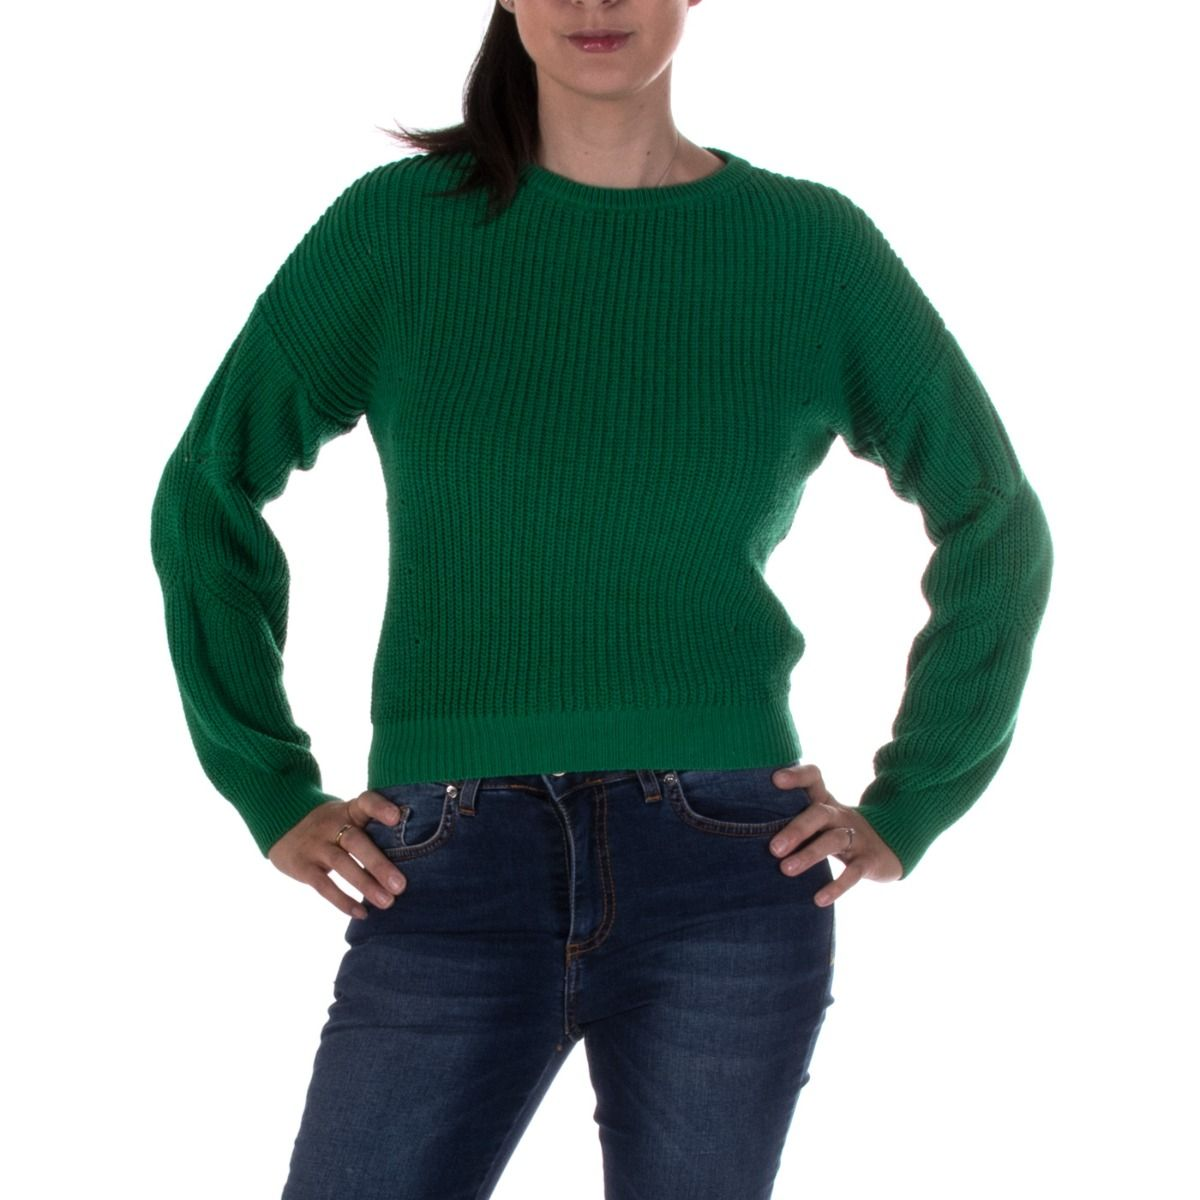 buy popular 039f1 3c9a3 MISS MISS MAGLIONE DONNA 2372 VERDE